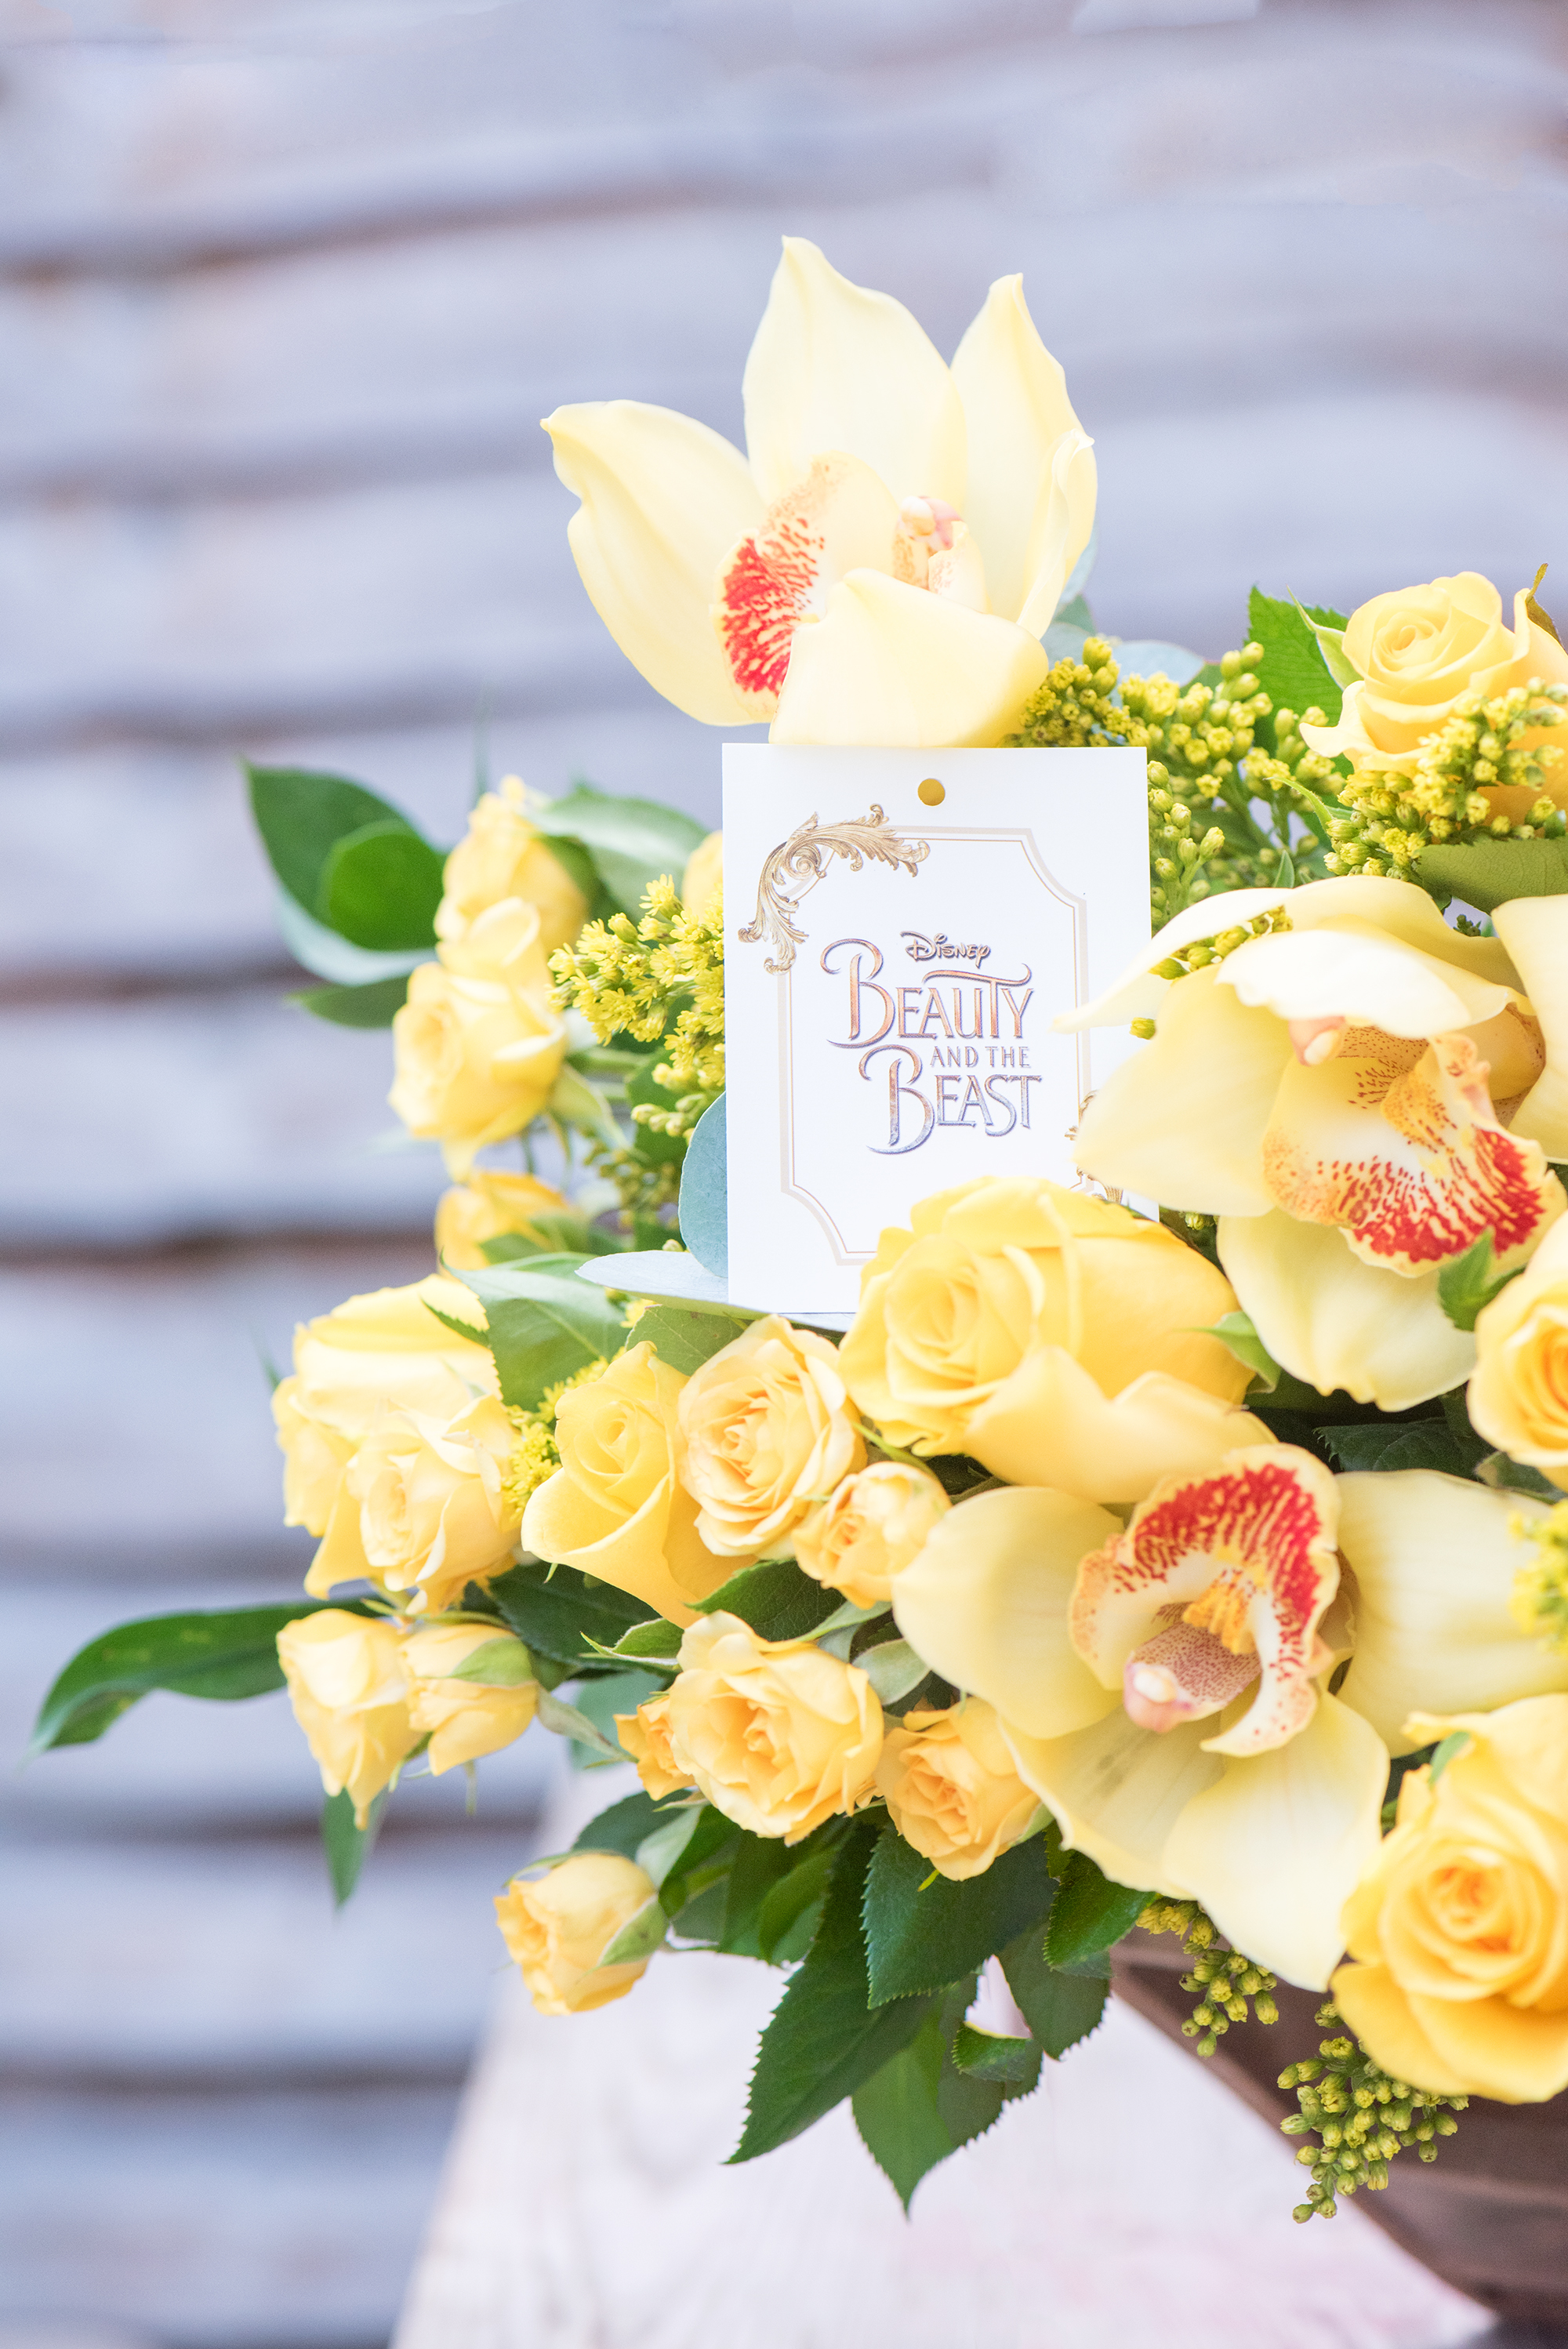 FLOWERS FOR A PRINCESS: A BEAUTY AND THE BEAST SURPRISE